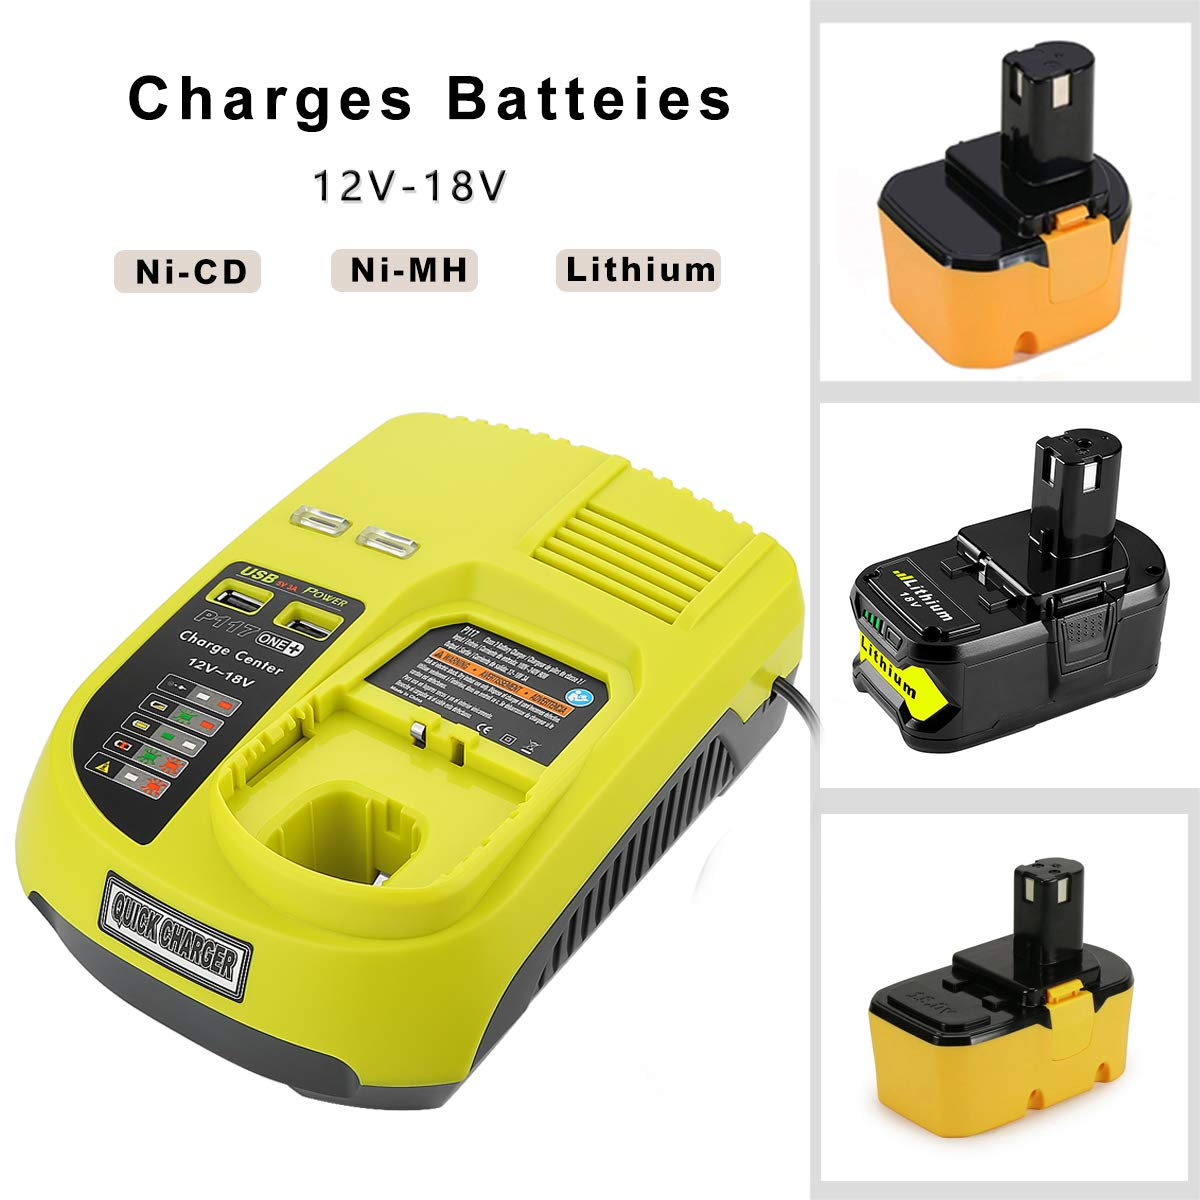 12v-18V For Ryobi P117 Rechargeable Battery Charger Battery Pack Power Tool Ni-Cd Ni-Mh Li-Ion P110 P111 P107